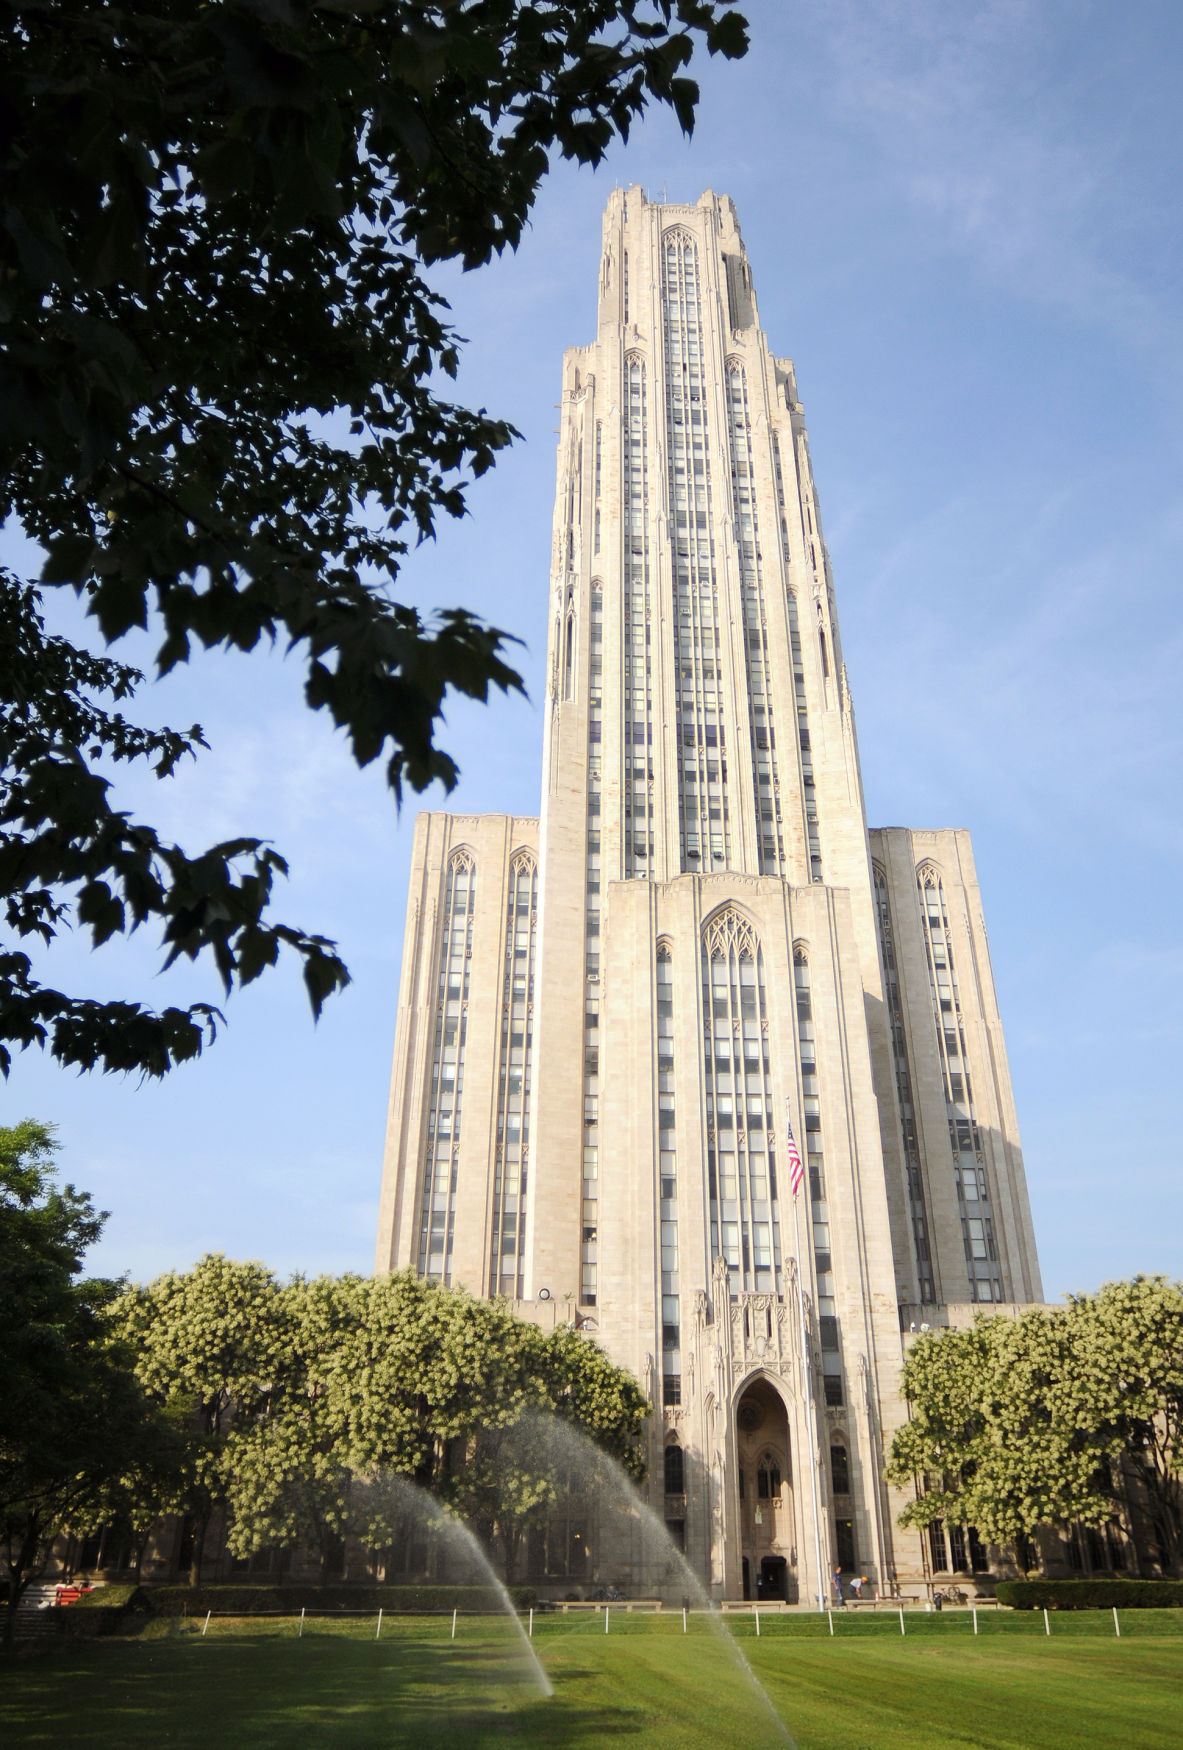 DEGREES OF DEBT: University of Pittsburgh